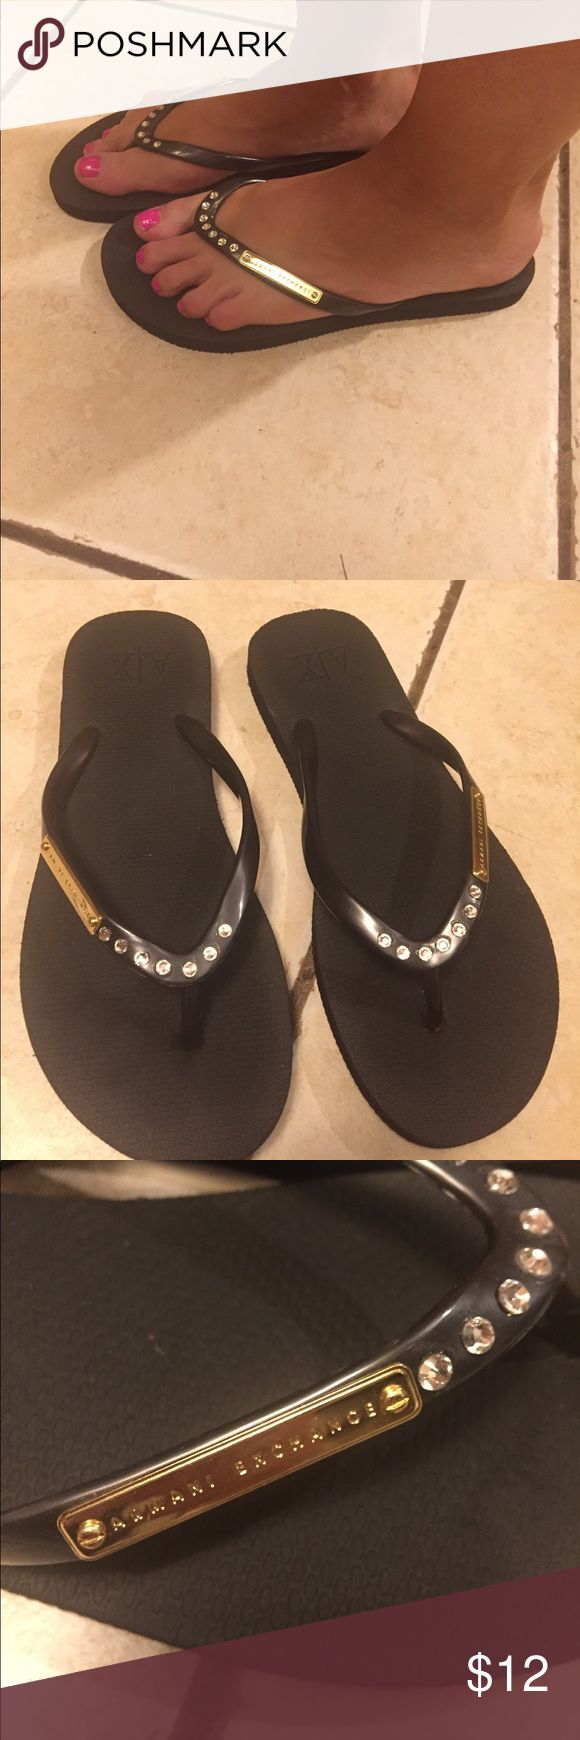 Armani Exchange Flip Flop Armani Exchange Flip Flop  size 7 with crystals Armani Exchange Shoes Sandals